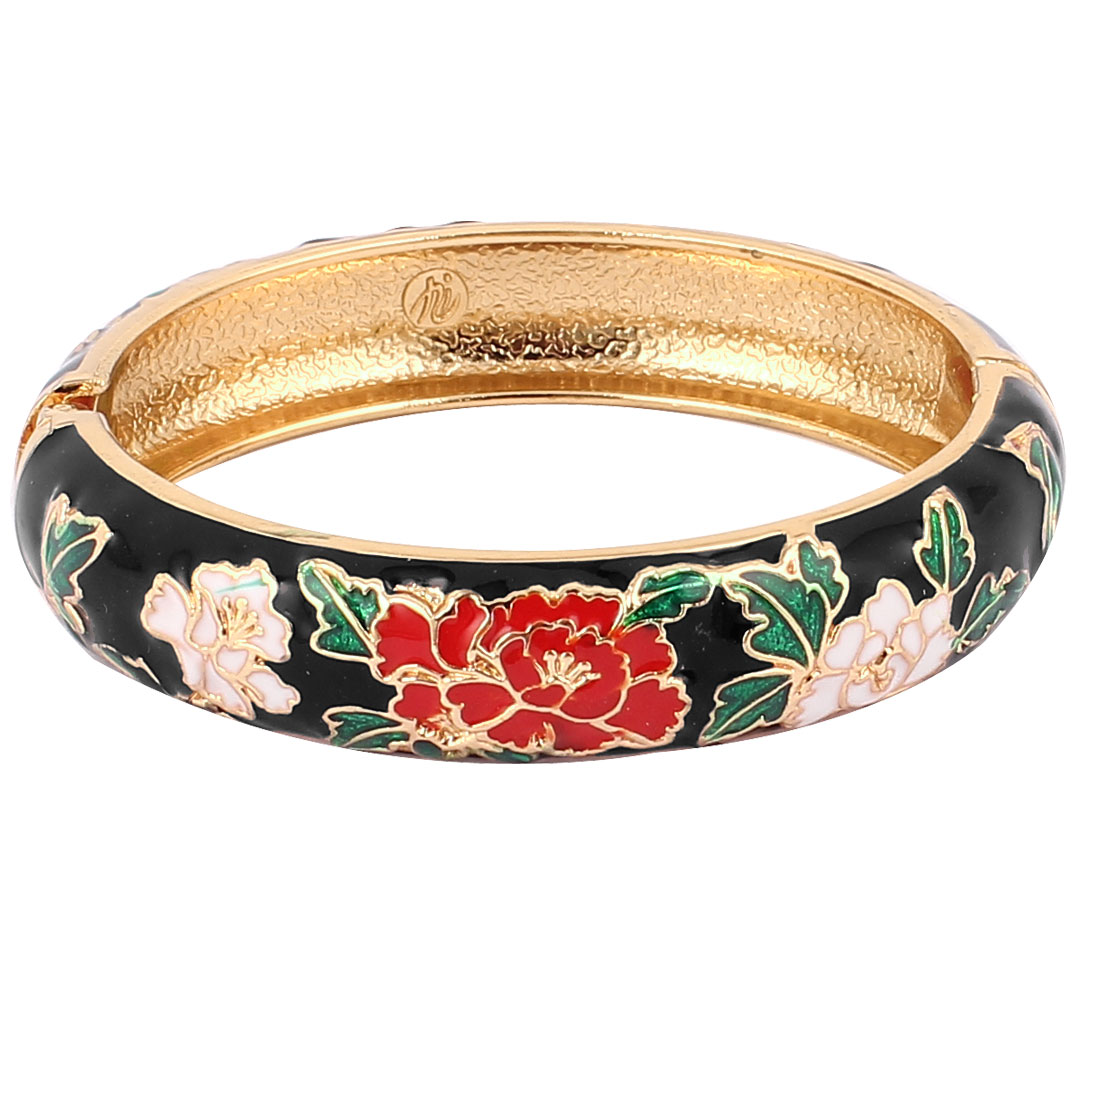 Lady Flower Carved Enamel Spring Bangle Hinge Bracelet Jewelry Black